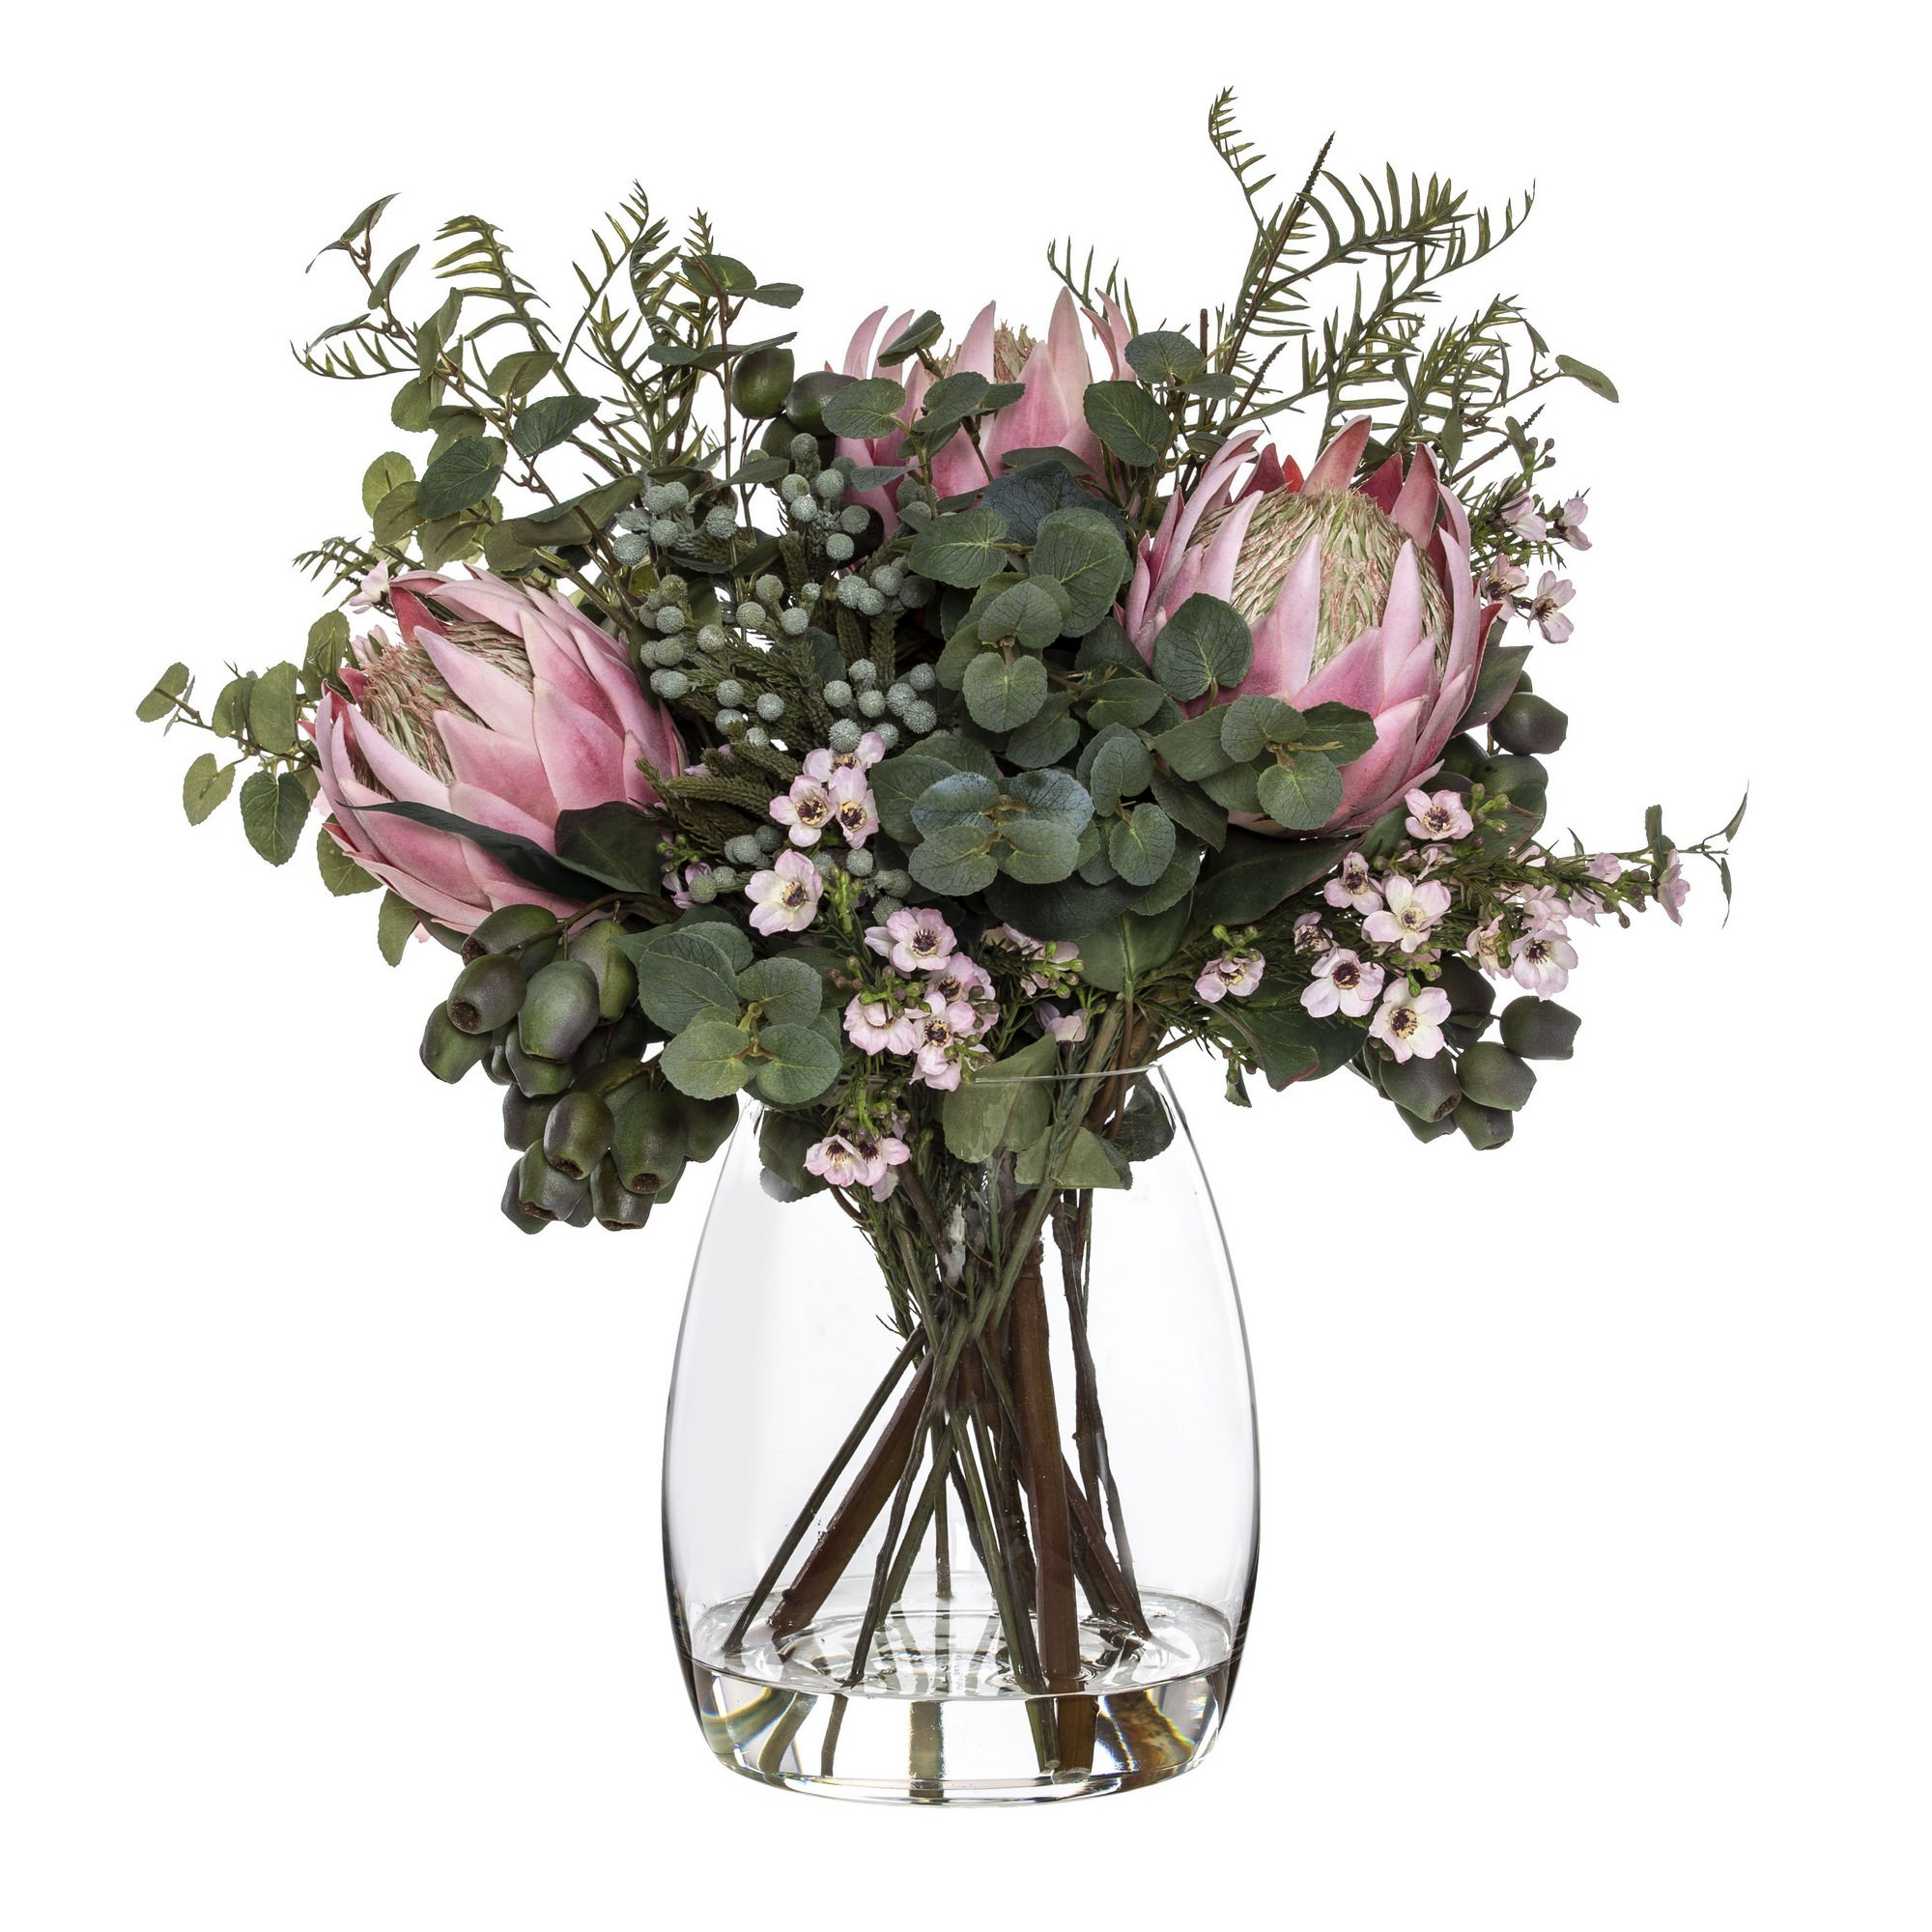 Artificial King Protea & Wax Flowe rin Evelyn Vase, Pink Flower, Large